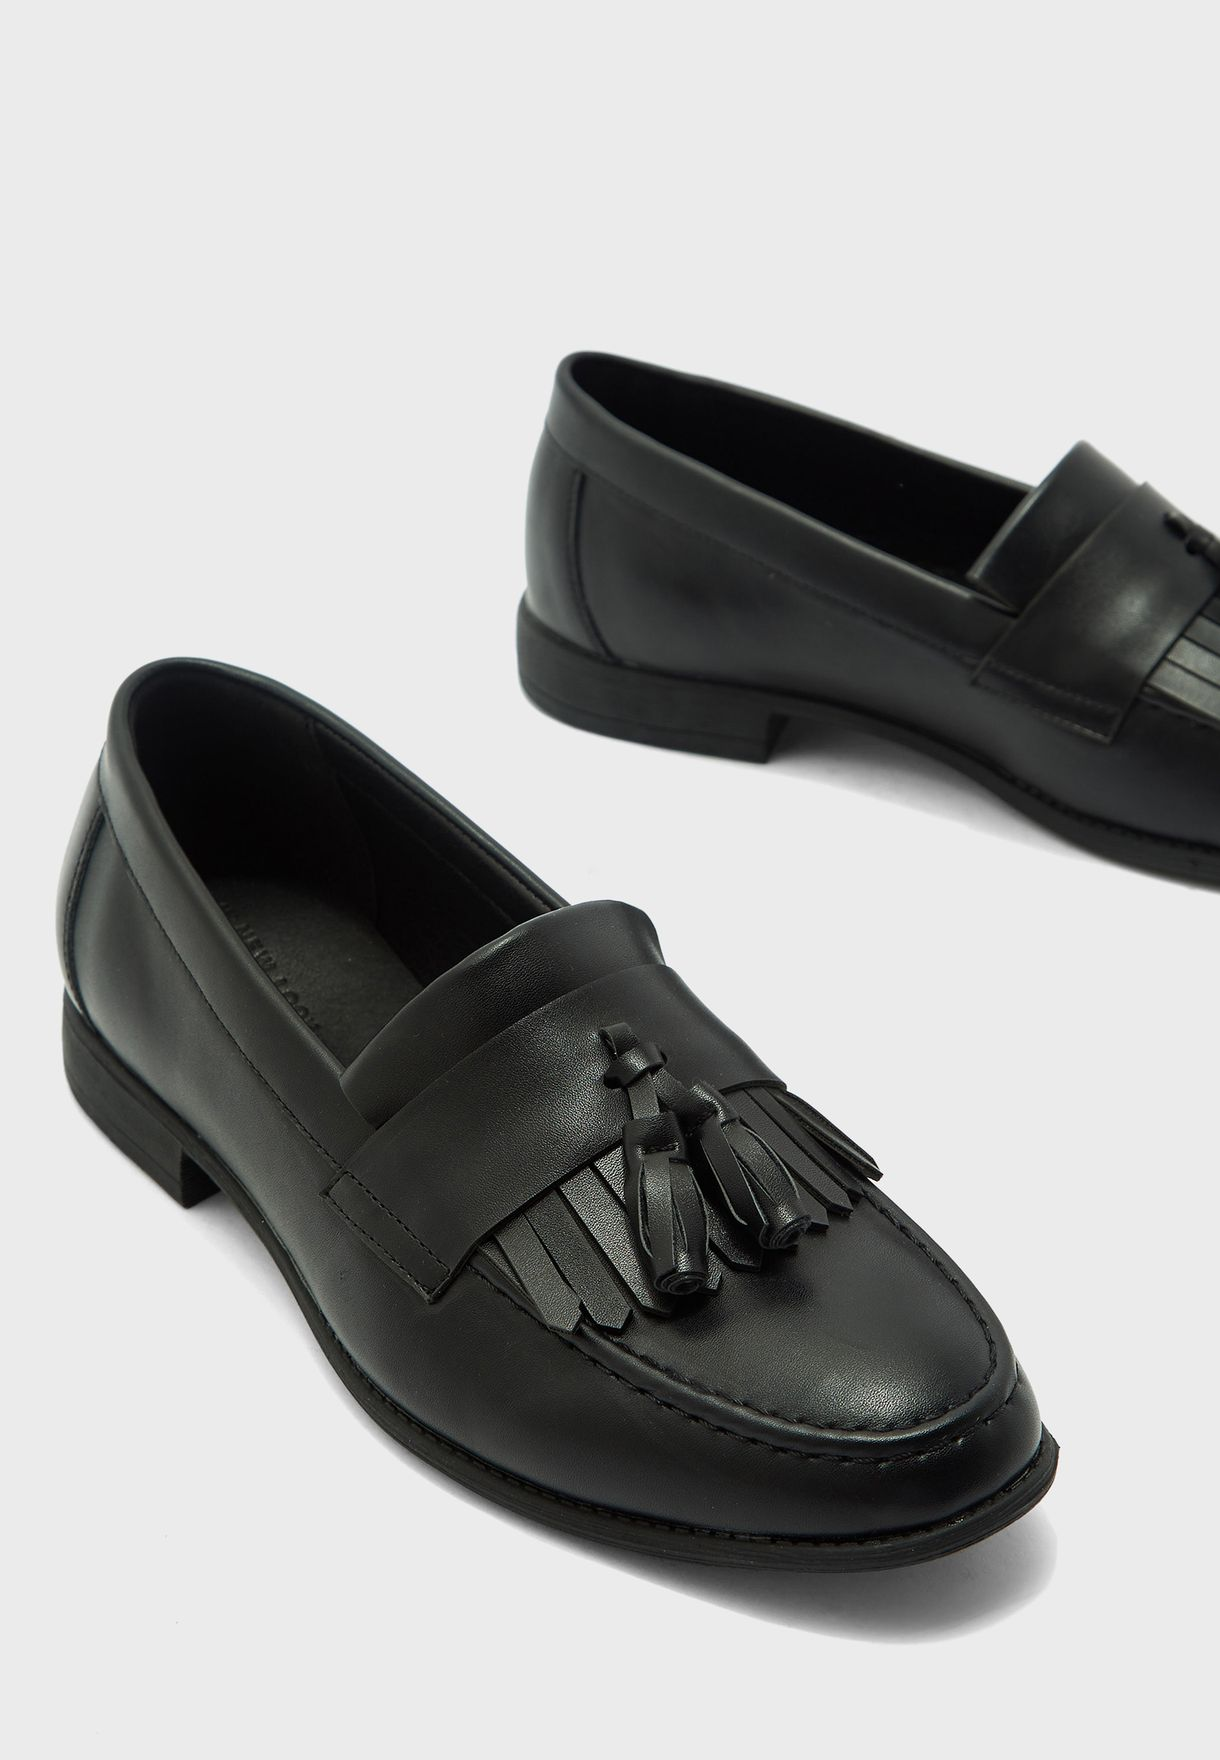 75 Larry Tassel Loafers